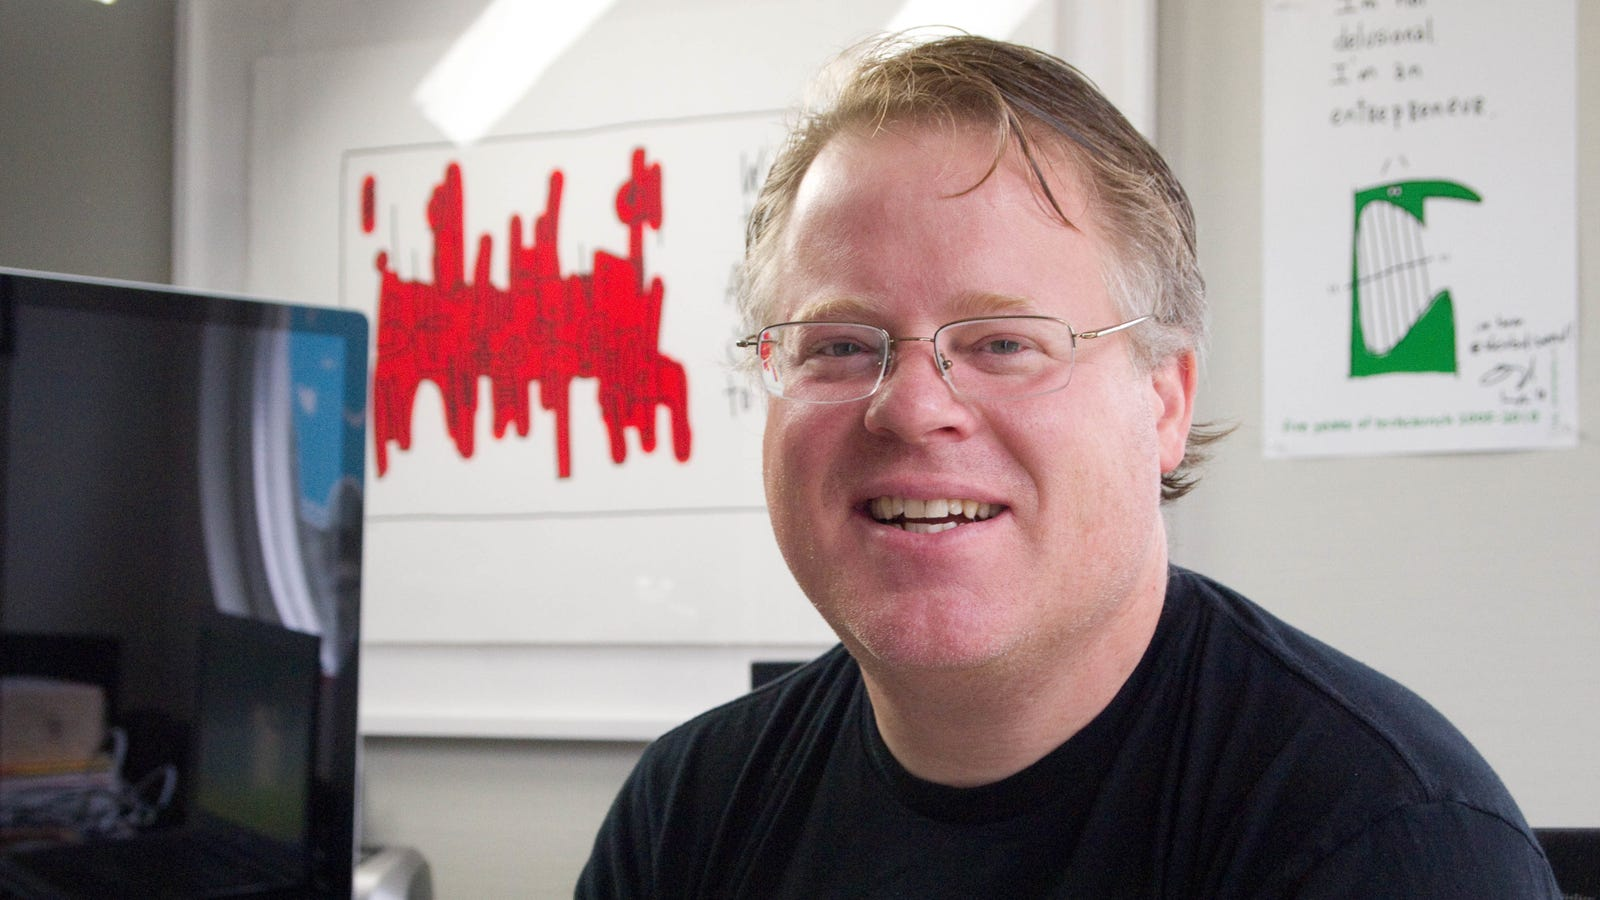 Tech Writer Robert Scoble Accused of Sexual Harassment, Assault by Multiple Women